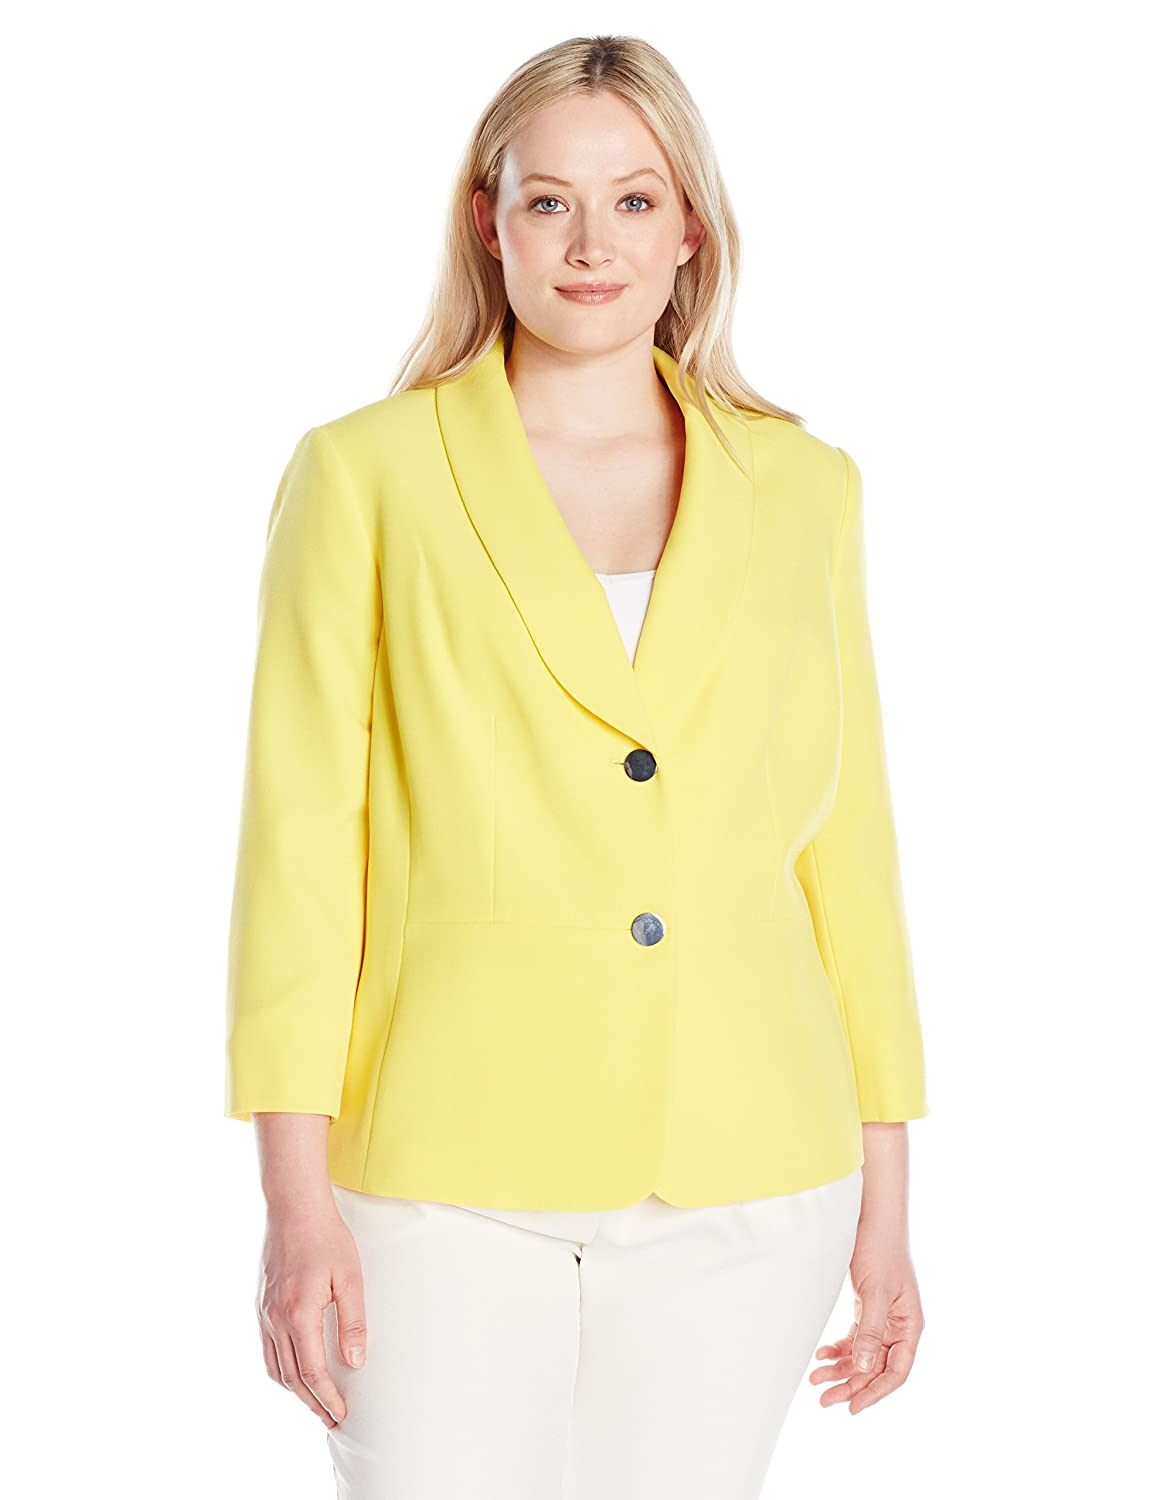 b841a429a2c Amazon.com  Kasper Women s Plus Size 2 Button Shawl Collar Jacket  W Seaming  Clothing